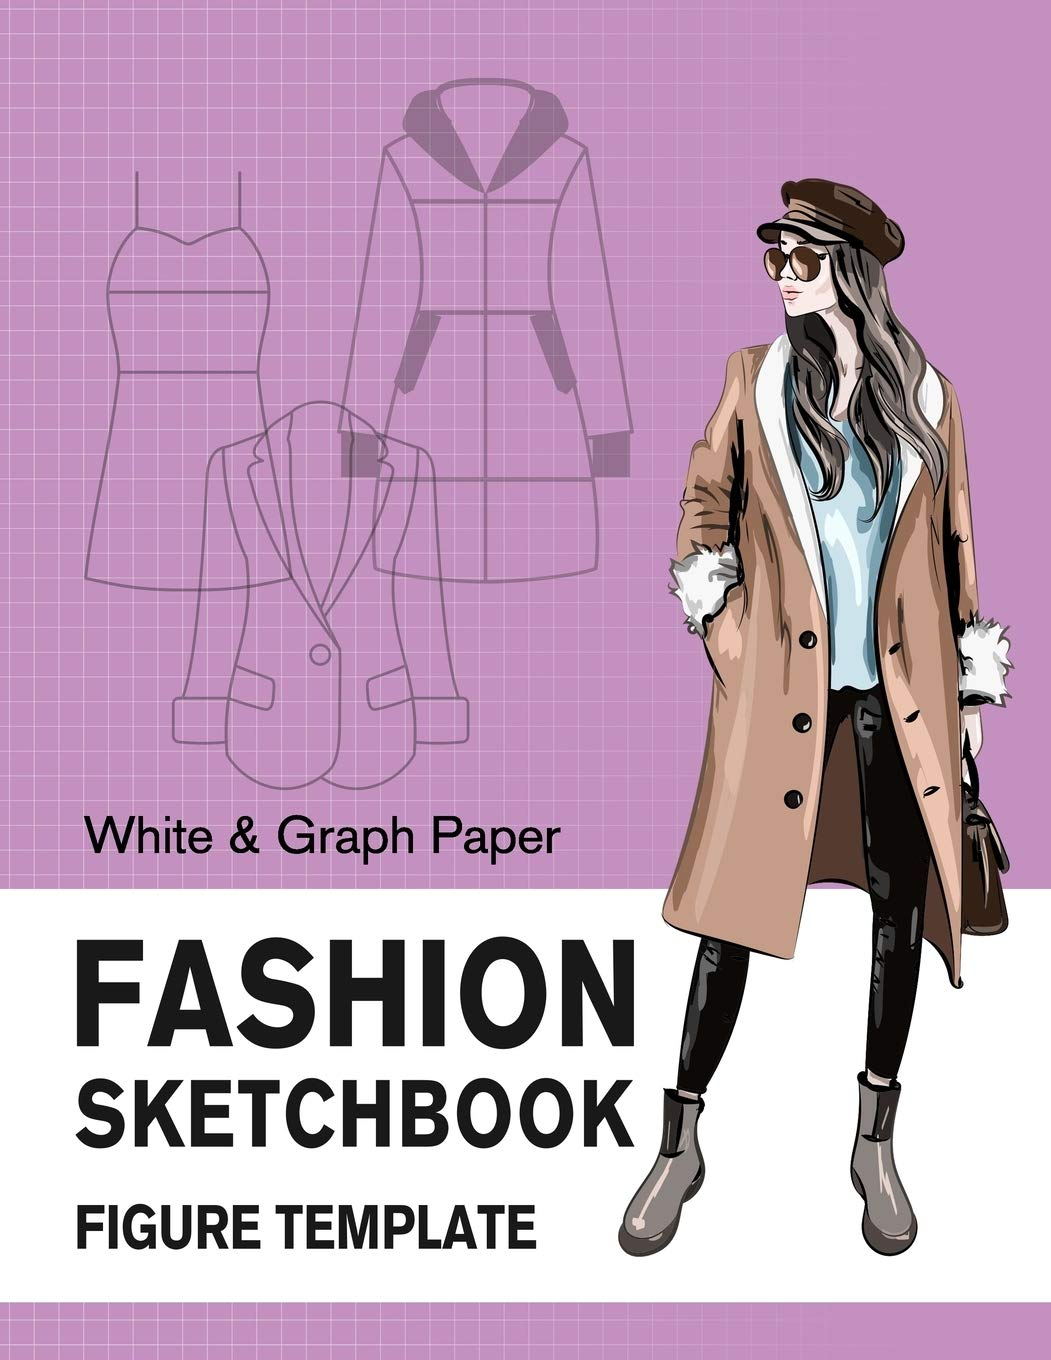 Fashion Sketchbook Figure Template White & Graph Paper: Easily Sketching and Drawing Your Fashion Styles with Large Female Croquis and Record Your Ideas with the Blank Graph Paper